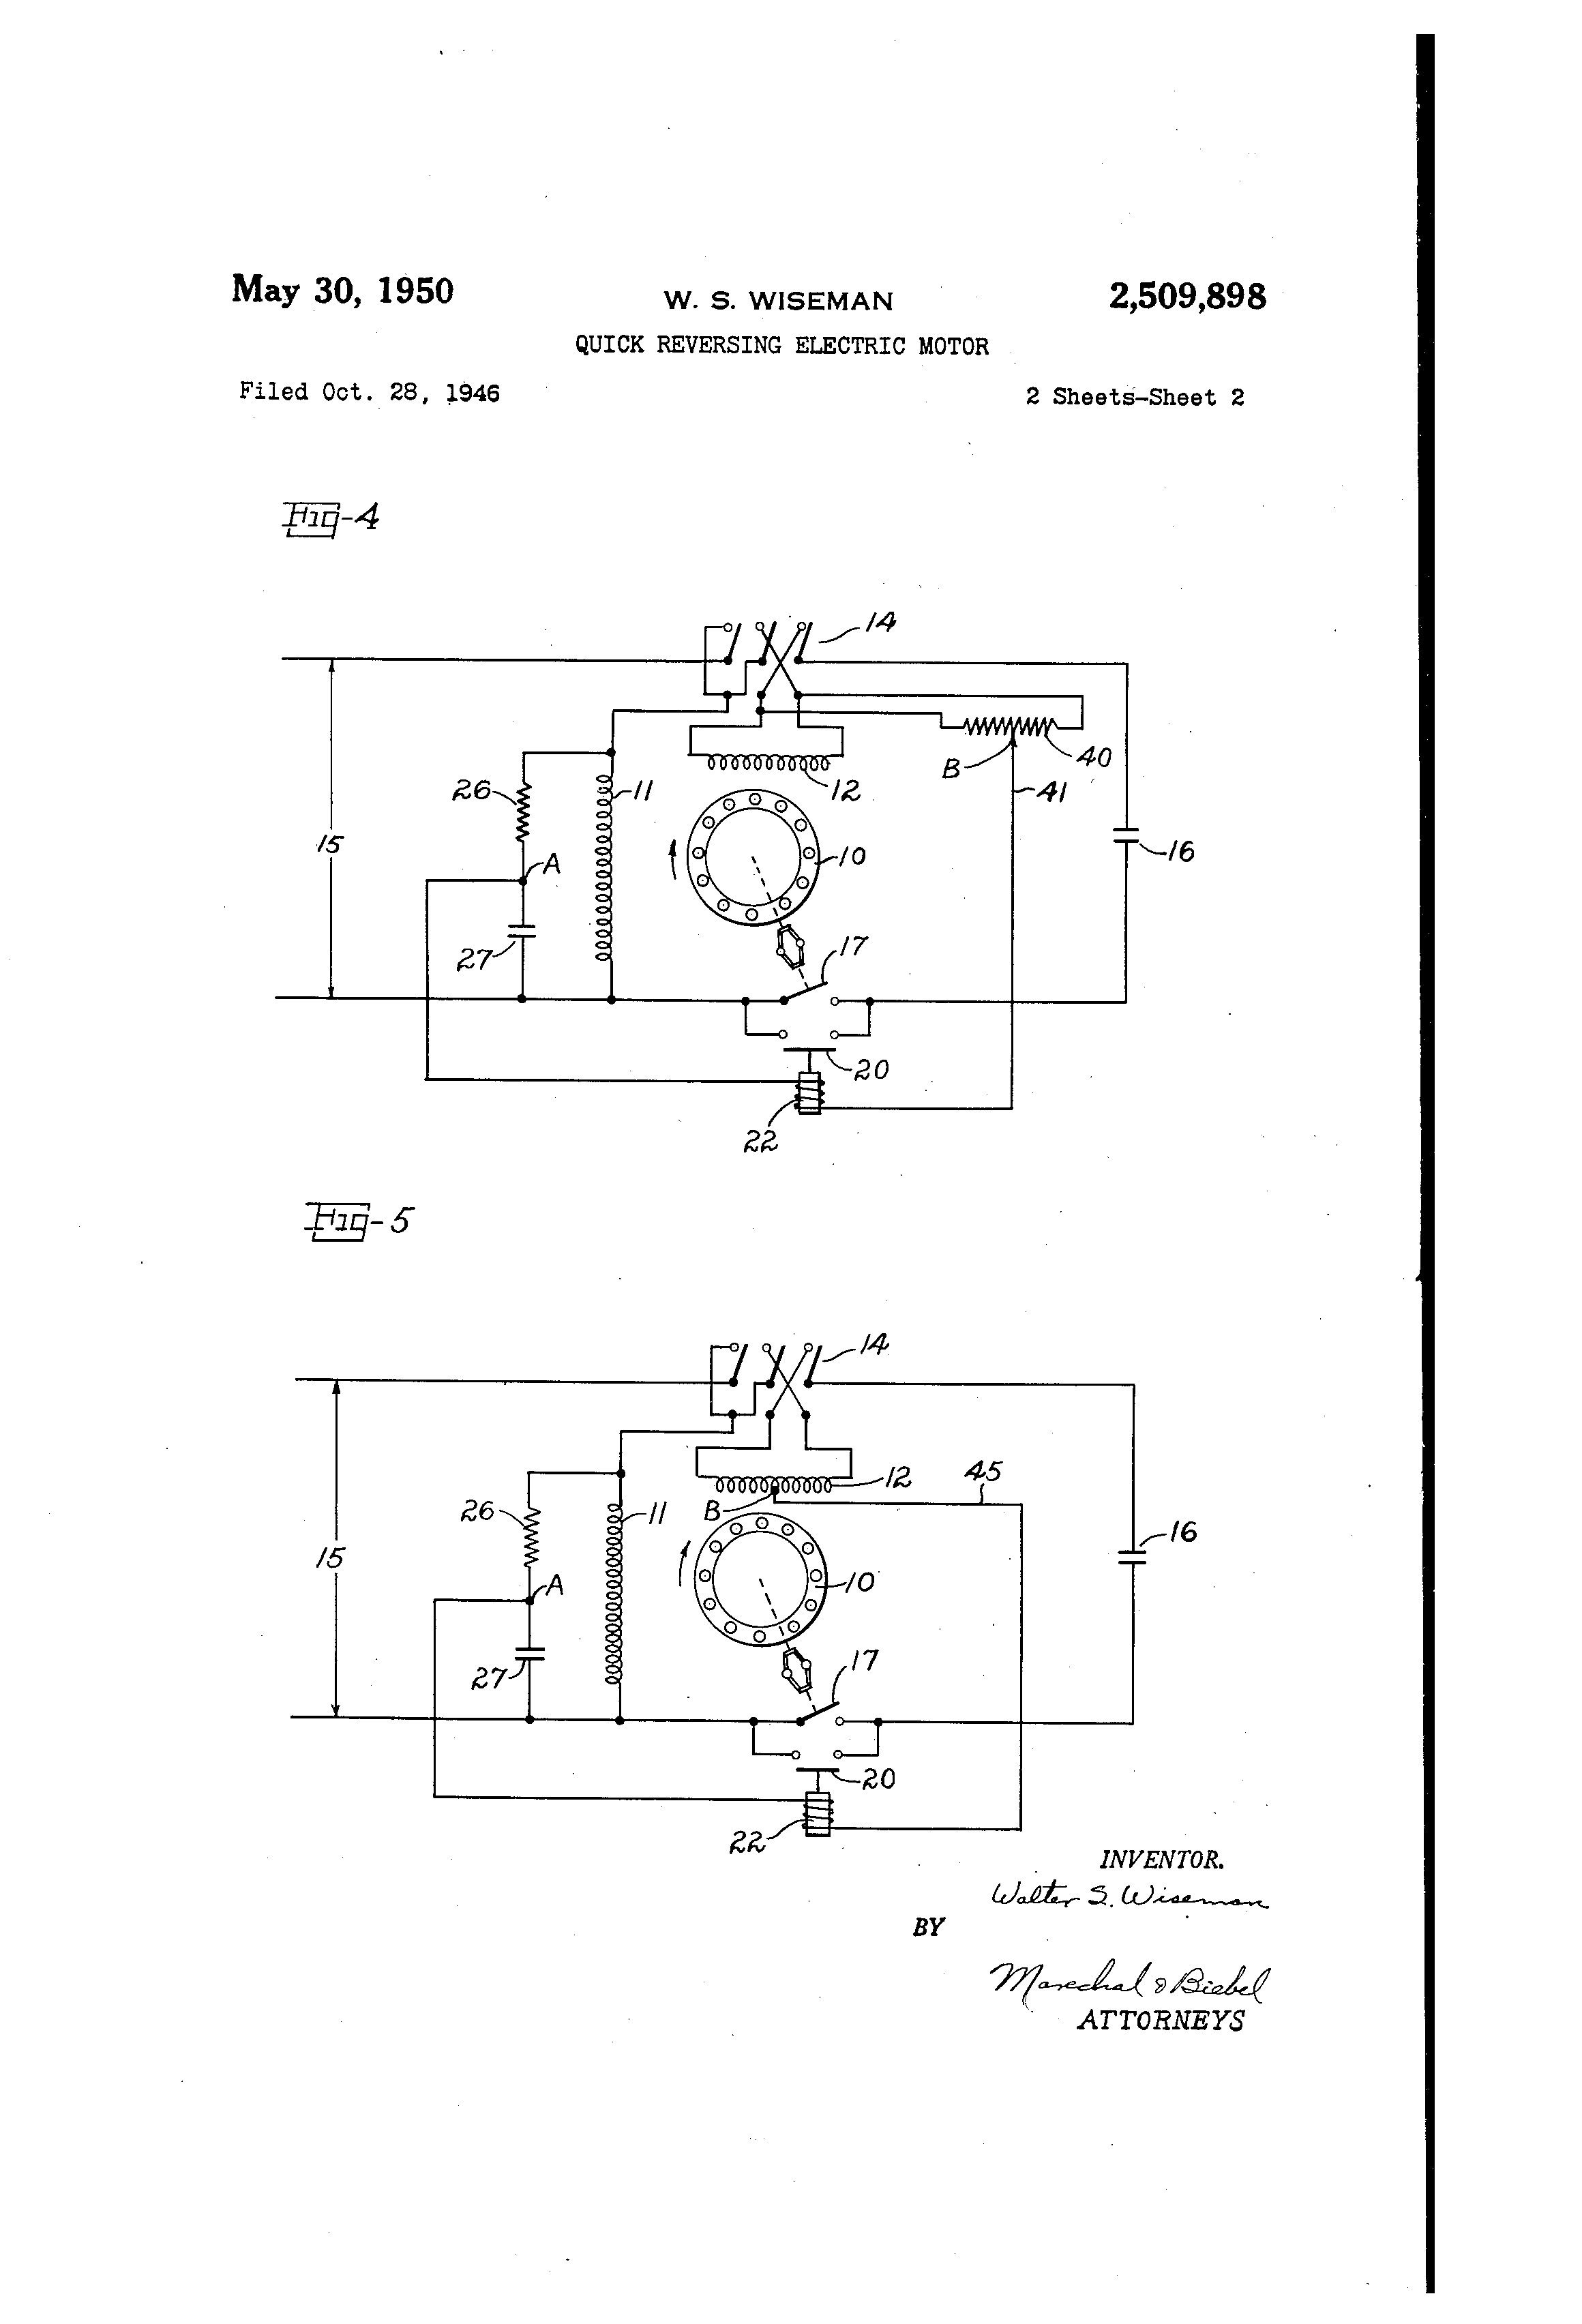 Motor Contactor Wiring Diagrams On 3 Phase Baldor Motor Wiring